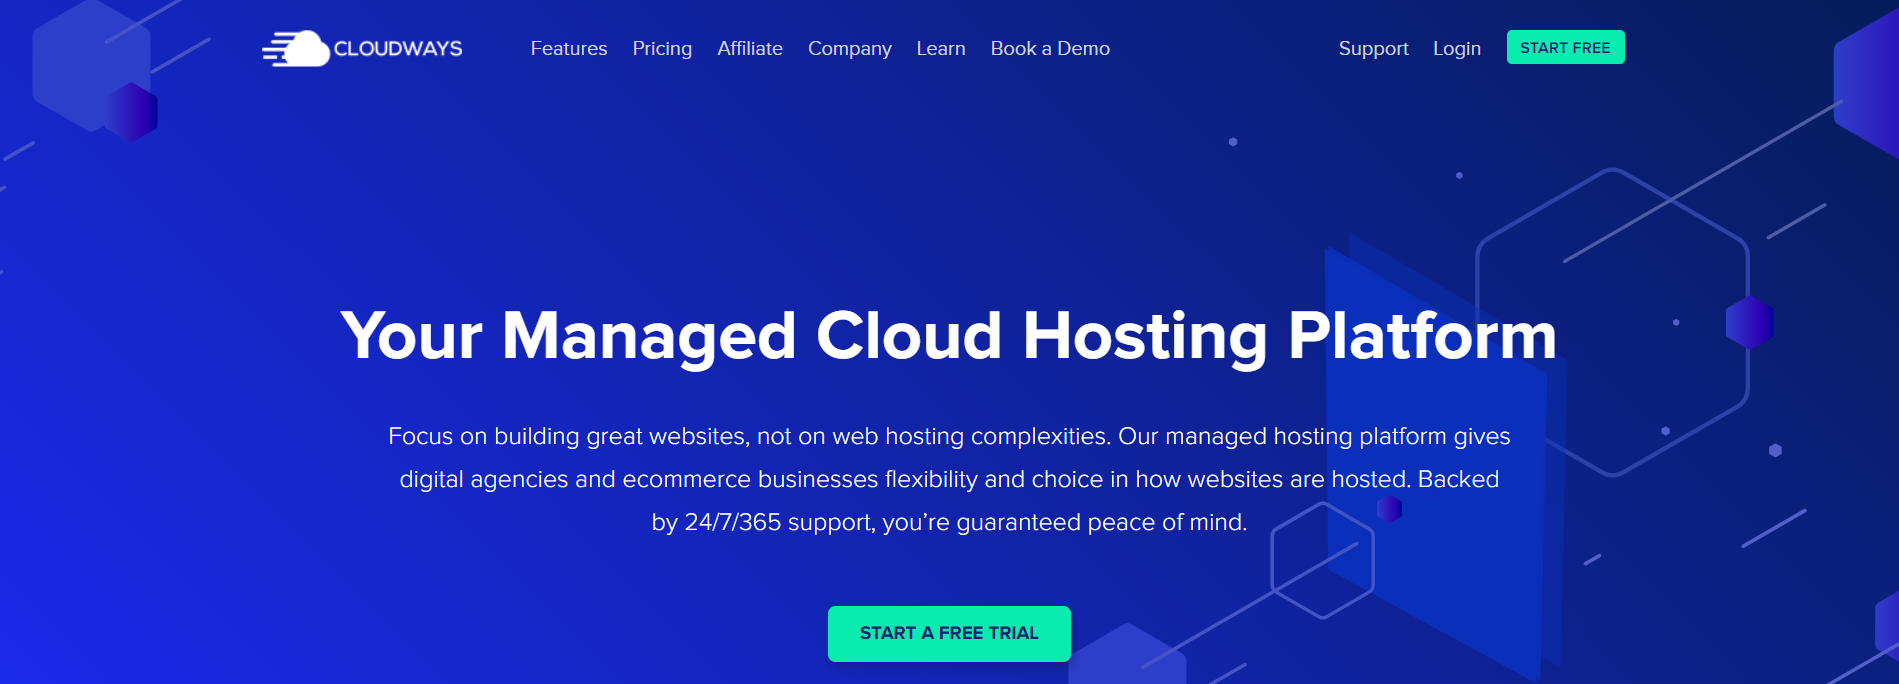 Cloudways-Overview